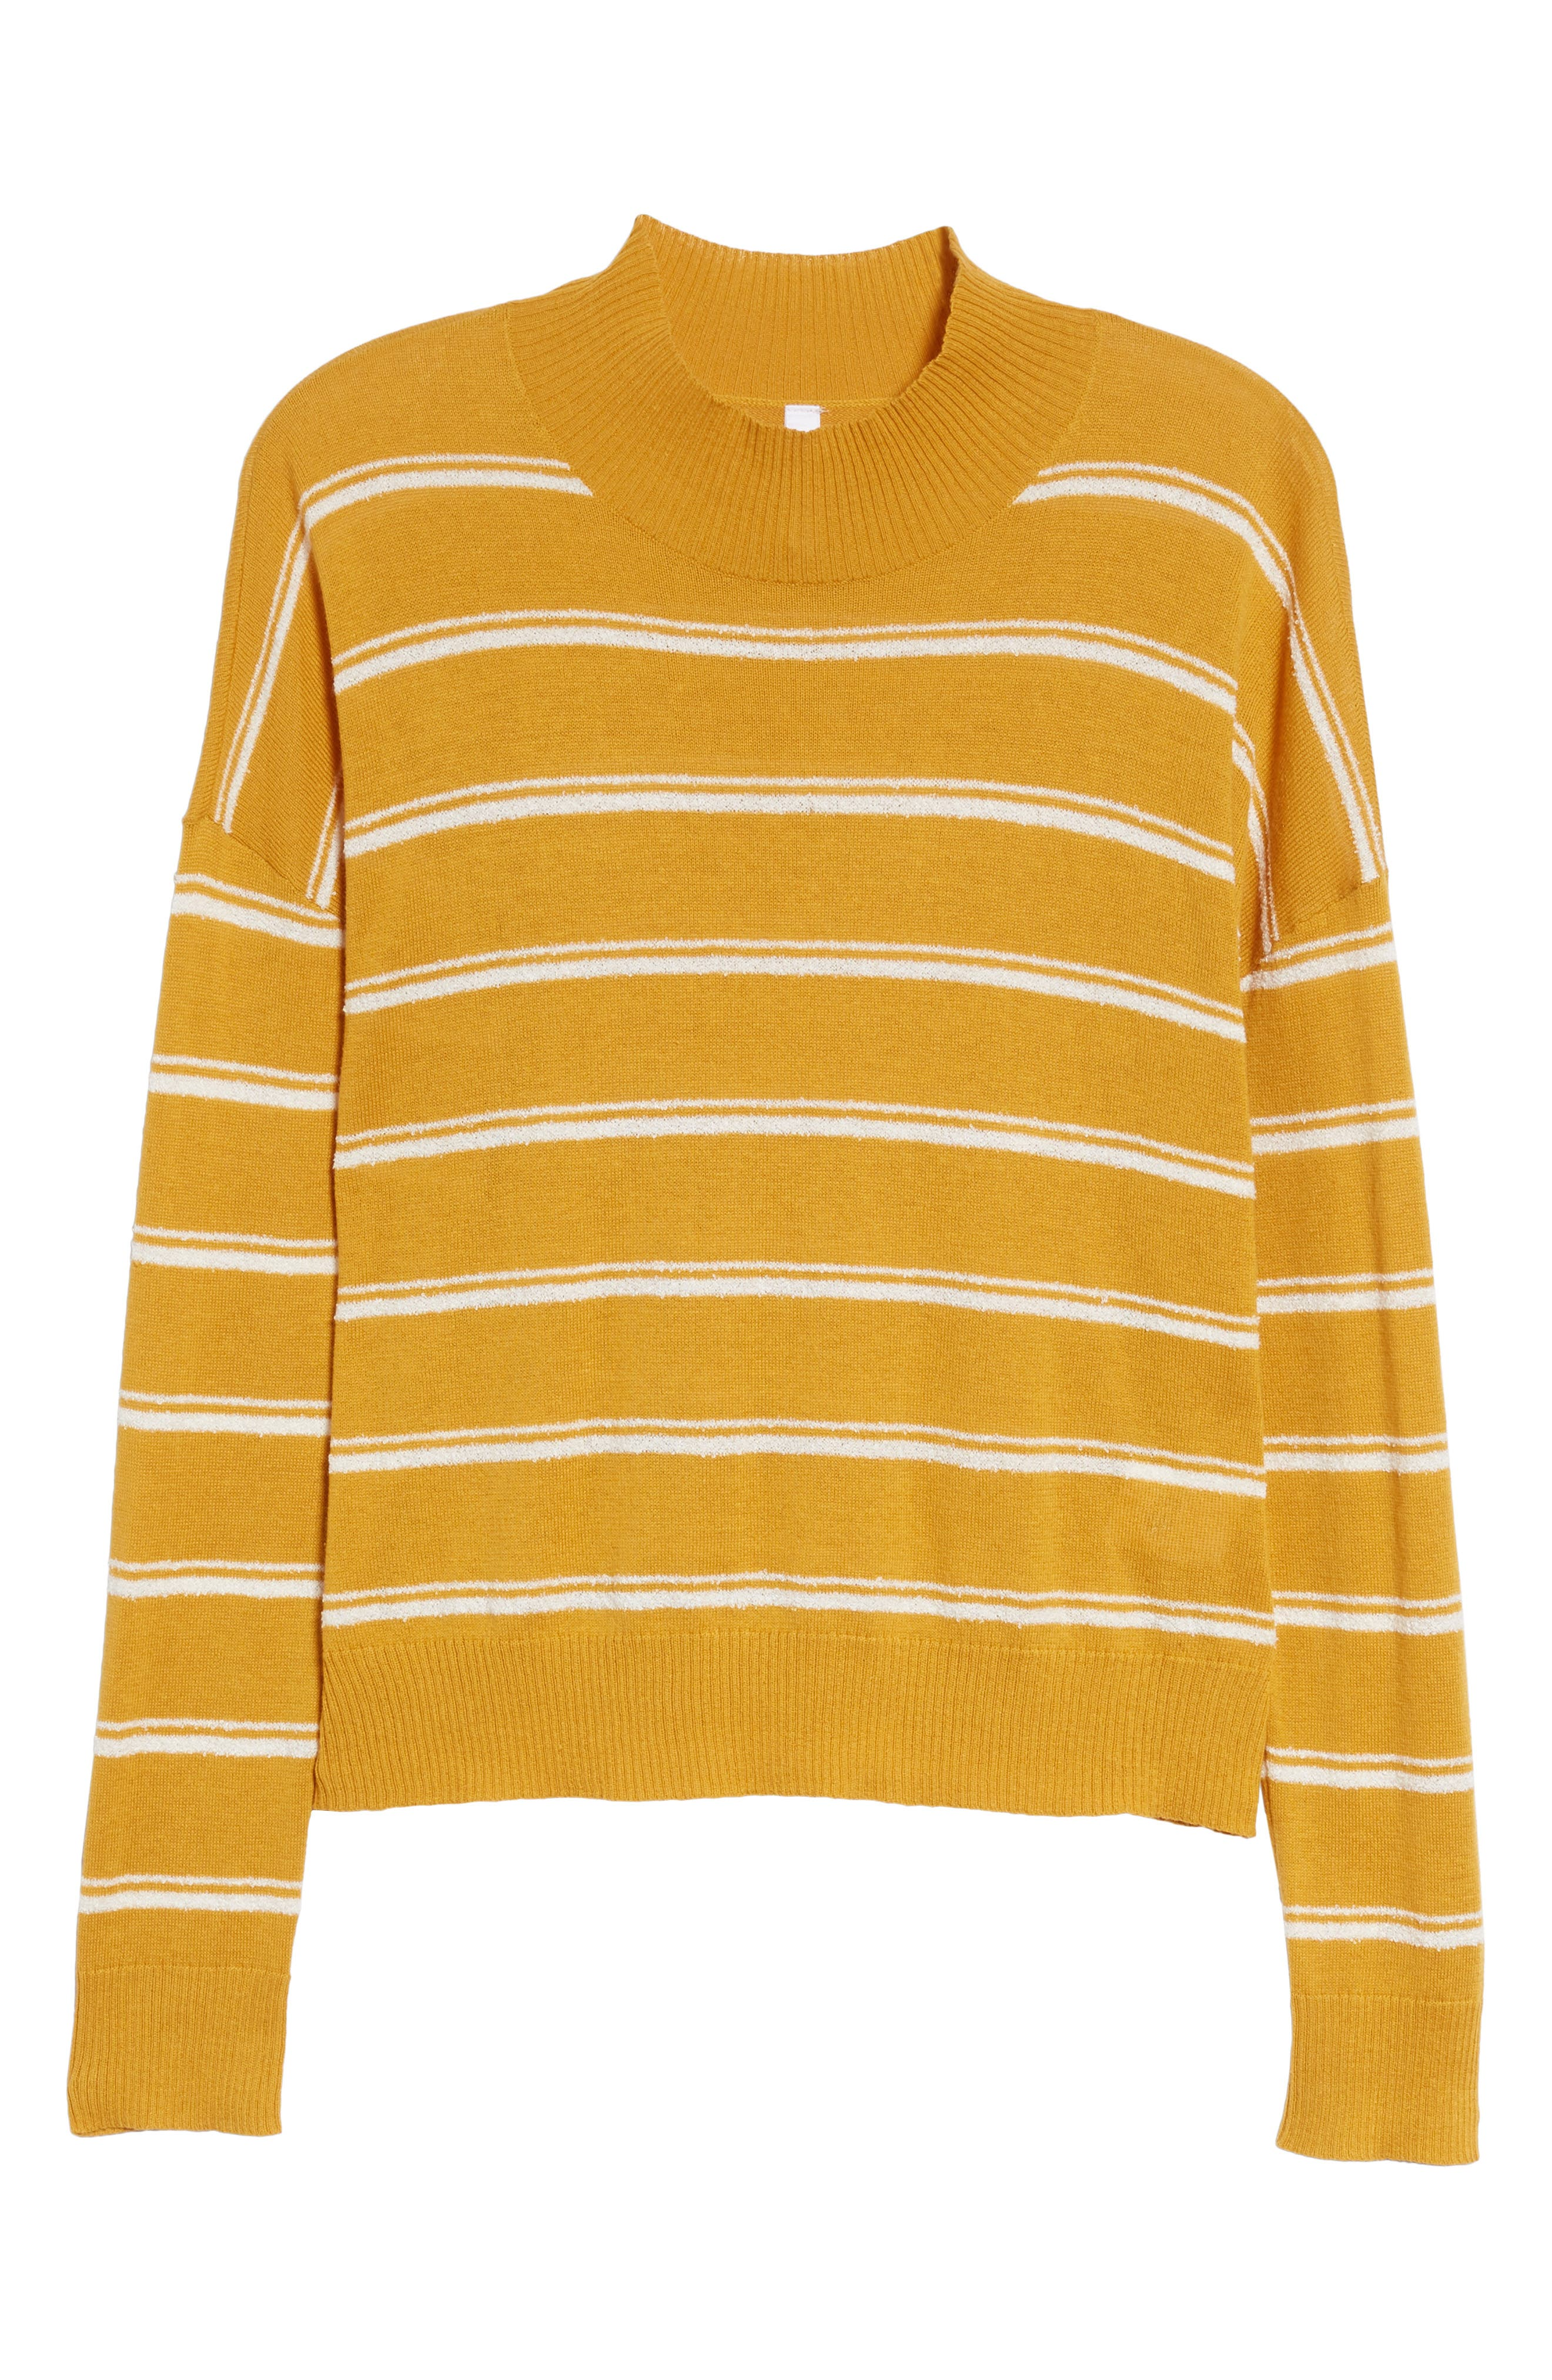 Armed Stripe Sweater,                             Alternate thumbnail 6, color,                             779